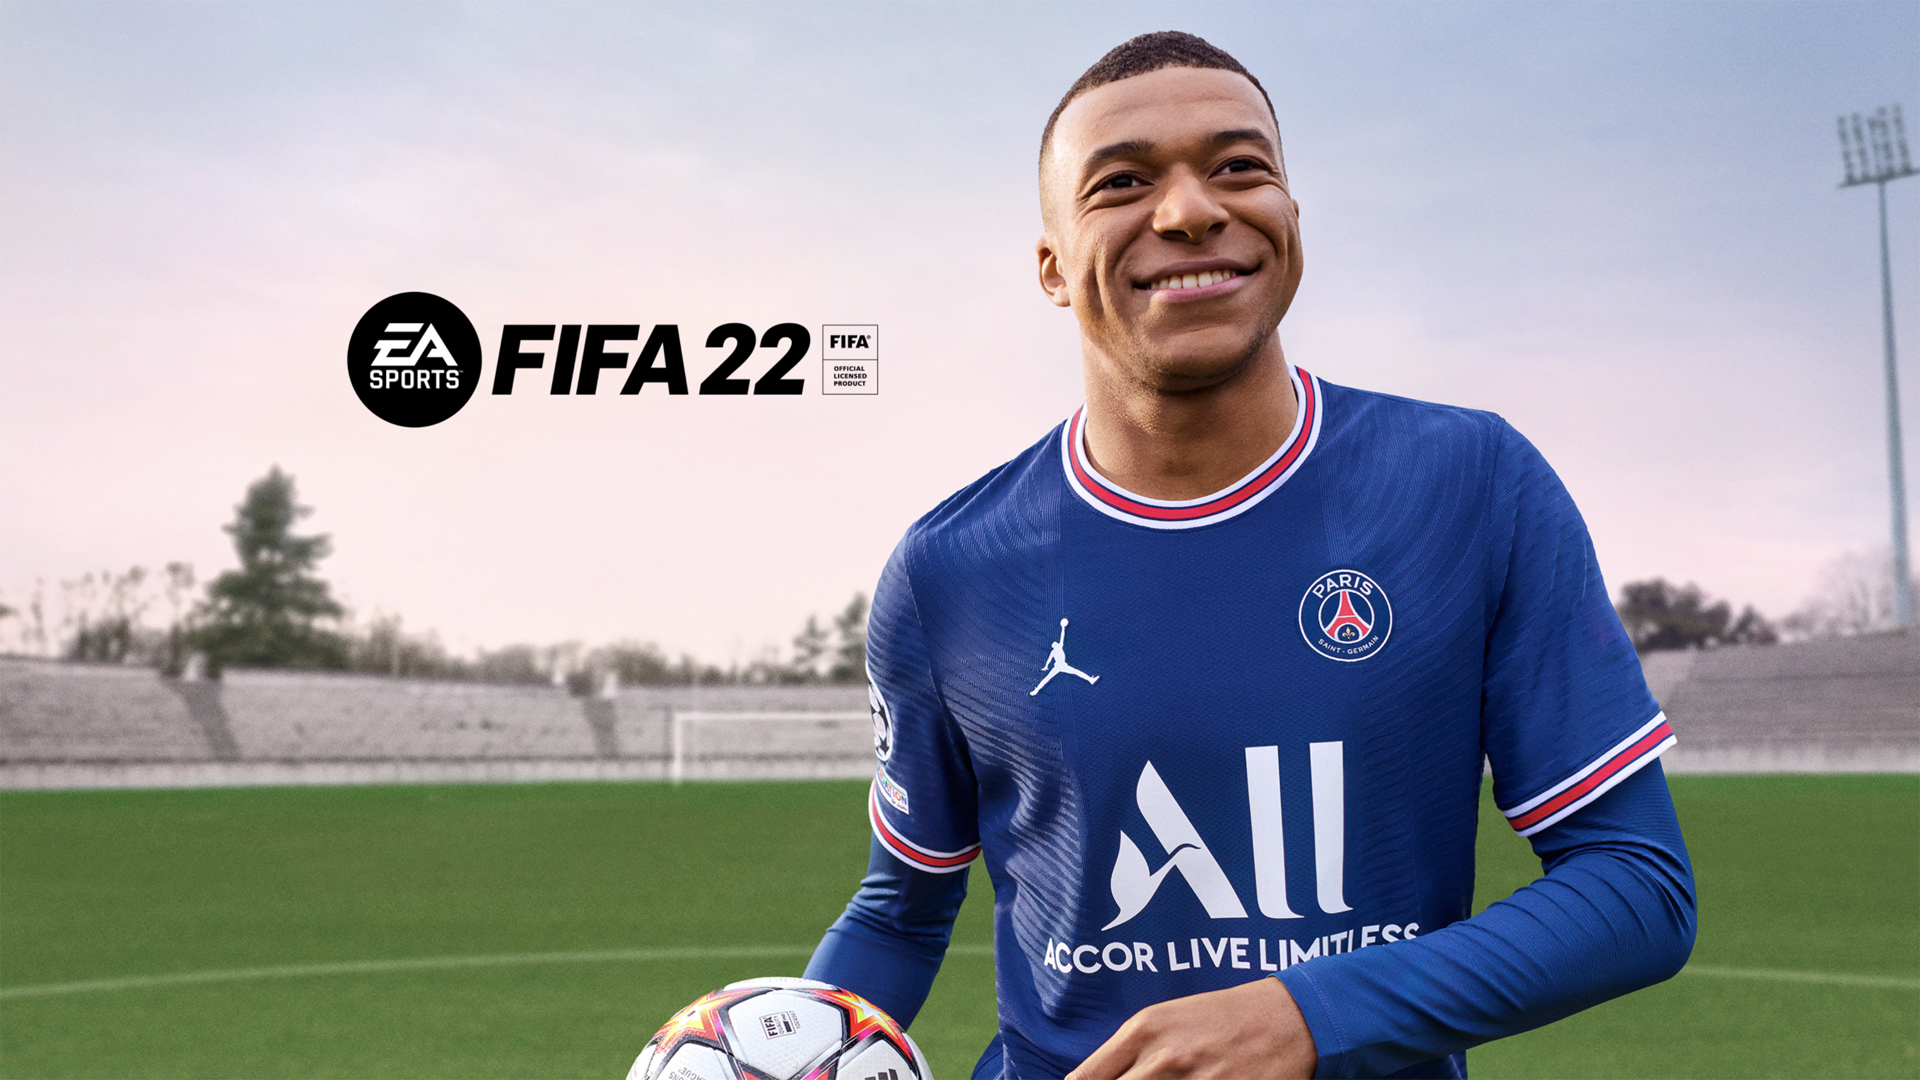 FIFA 22 to include Preview Packs from launch